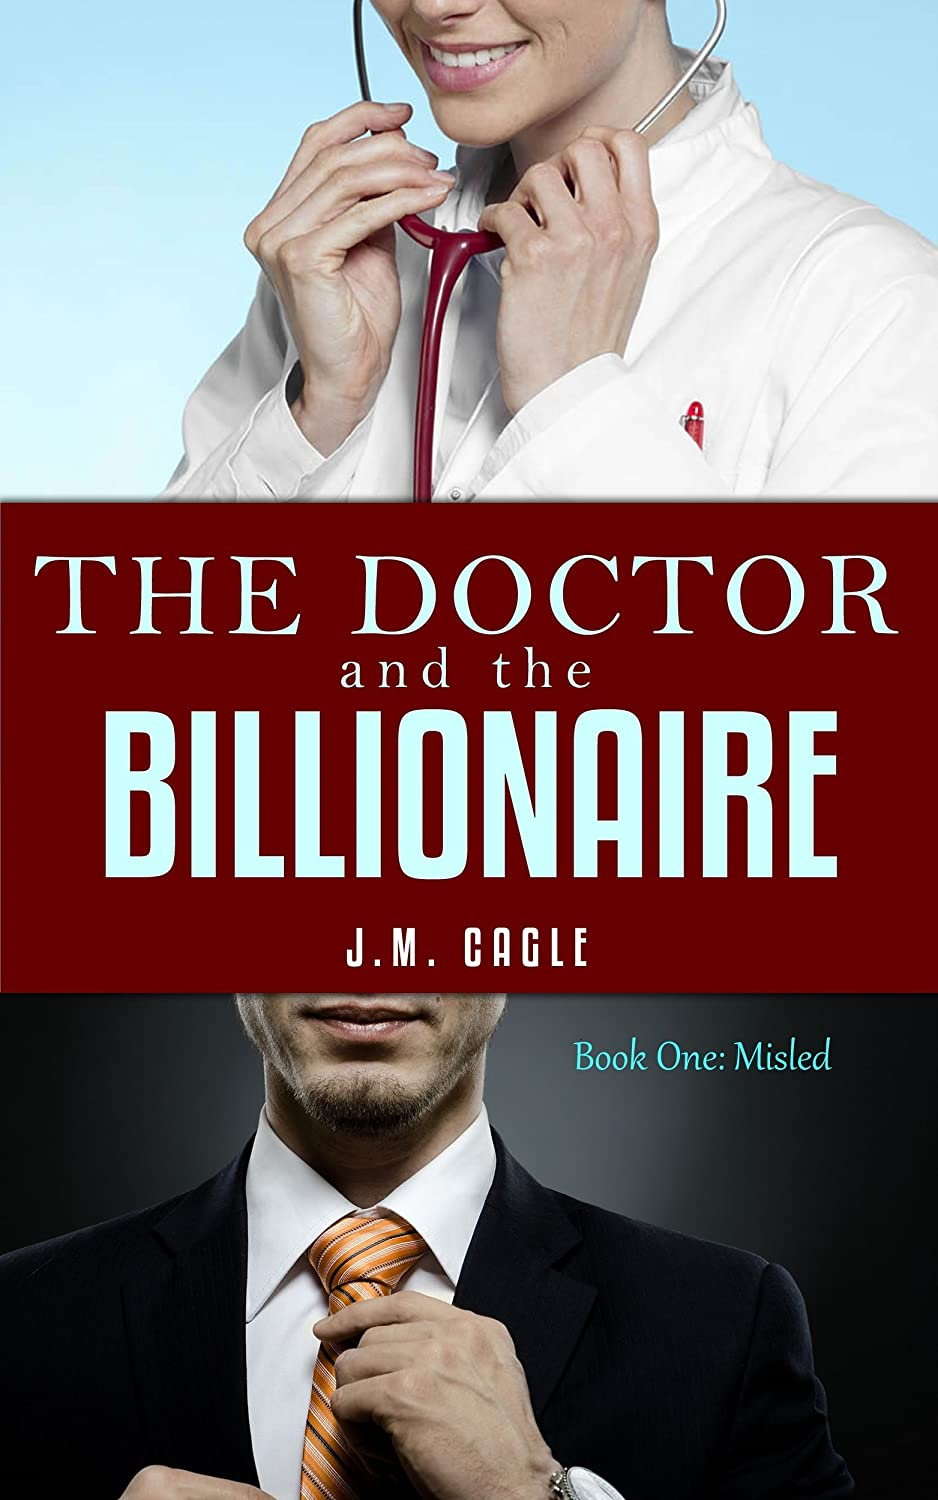 The Doctor and The Billionaire, Book One: Misled by J.M. Cagle